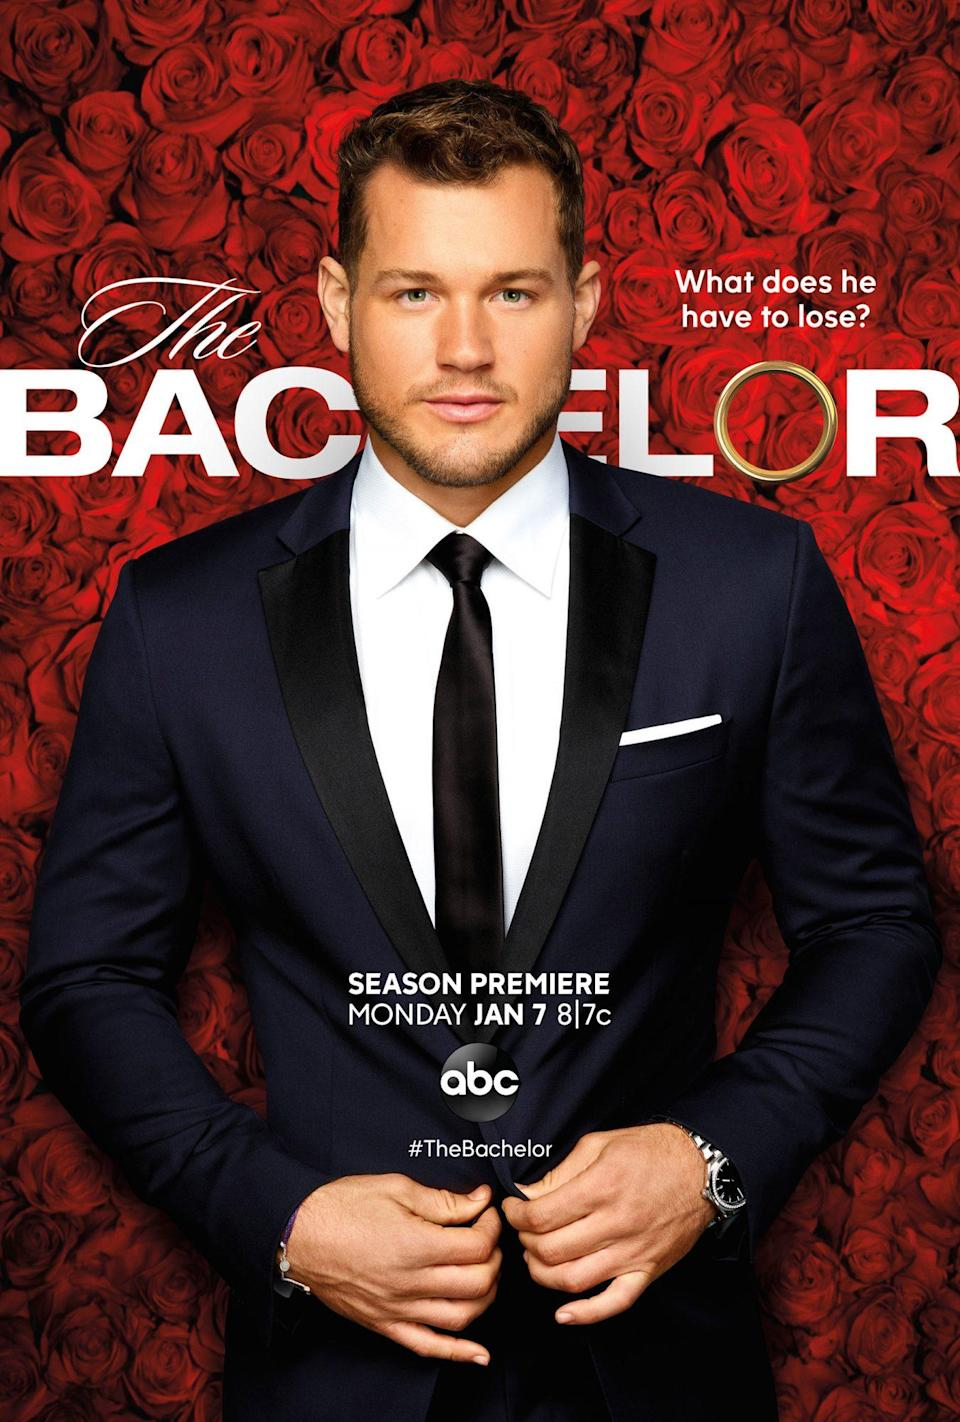 """<p>In 2019, Underwood hit the ground running as a <a href=""""https://people.com/tv/the-bachelor-premiere-colton-underwood-recap/"""" rel=""""nofollow noopener"""" target=""""_blank"""" data-ylk=""""slk:historic Bachelor"""" class=""""link rapid-noclick-resp"""">historic Bachelor</a>.</p> <p>""""I'm the first virgin Bachelor and it's crazy to even think about that,"""" he said during the premiere. """"I couldn't be more hopeful and excited.""""</p> <p>As the series played out, it got to a pivotal point when it came down to the <a href=""""https://people.com/tv/bachelor-colton-underwood-inspected-fantasy-suites-microphones/"""" rel=""""nofollow noopener"""" target=""""_blank"""" data-ylk=""""slk:Fantasy Suites"""" class=""""link rapid-noclick-resp"""">Fantasy Suites</a>, where Underwood admitted to checking the rooms to make sure no mics or cameras were lingering. <a href=""""https://www.podcastone.com/ladygang-podcast"""" rel=""""nofollow noopener"""" target=""""_blank"""" data-ylk=""""slk:During an episode of the LadyGang podcast"""" class=""""link rapid-noclick-resp"""">During an episode of the <em>LadyGang </em>podcast</a>, Underwood also revealed the worst part about filming his season, saying, """"The hardest part is all the virginity talk when I know my grandma's watching.""""</p>"""